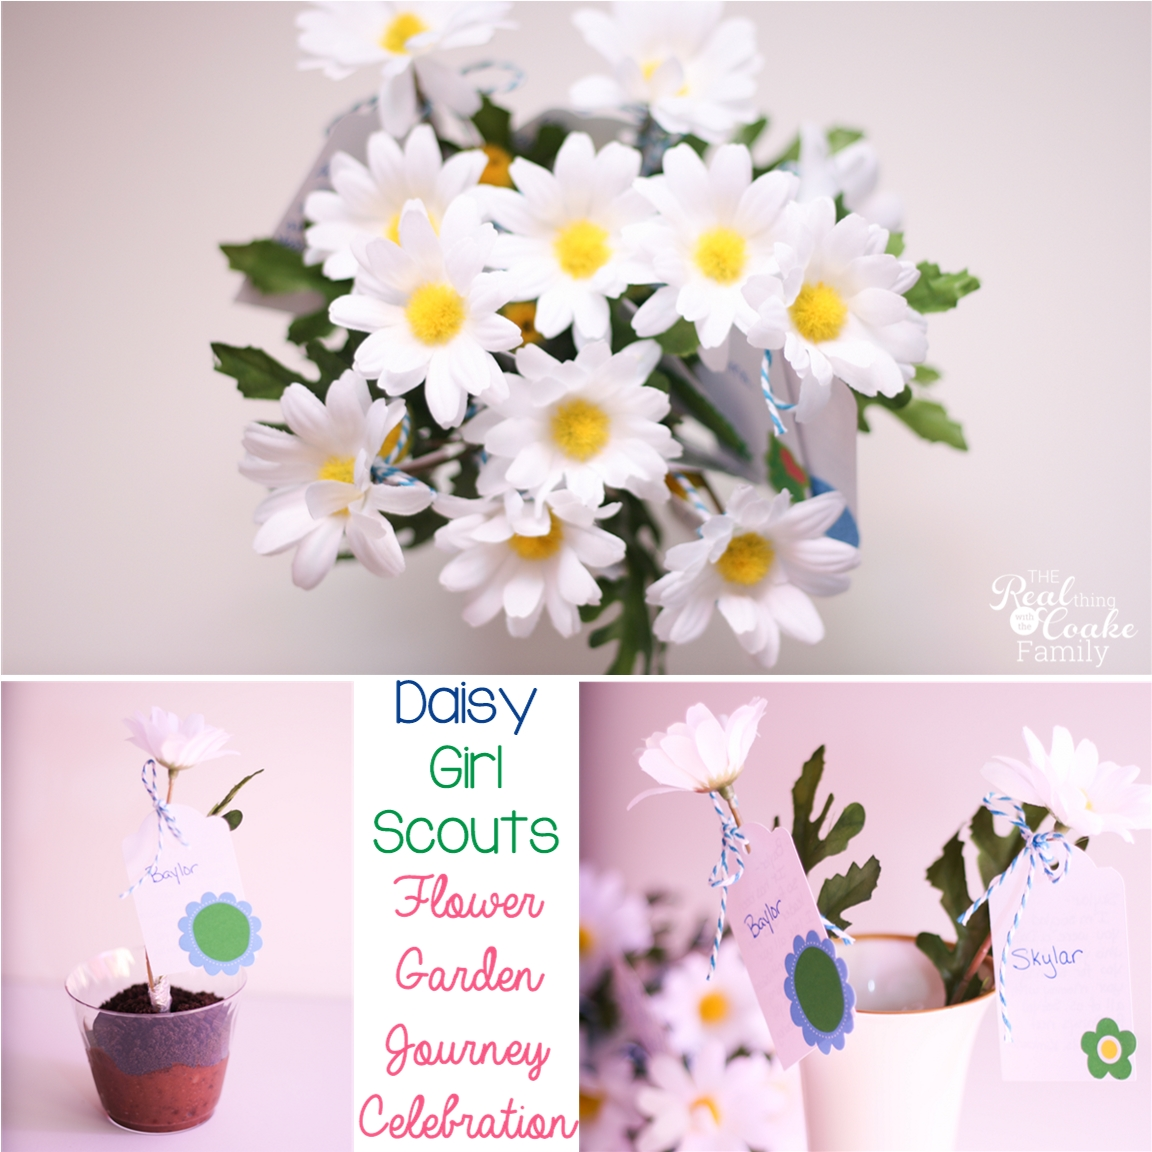 Daisy girl scouts flower garden journey celebration daisy girl scouts ideas for the flower garden journey celebration cute and simple ideas to izmirmasajfo